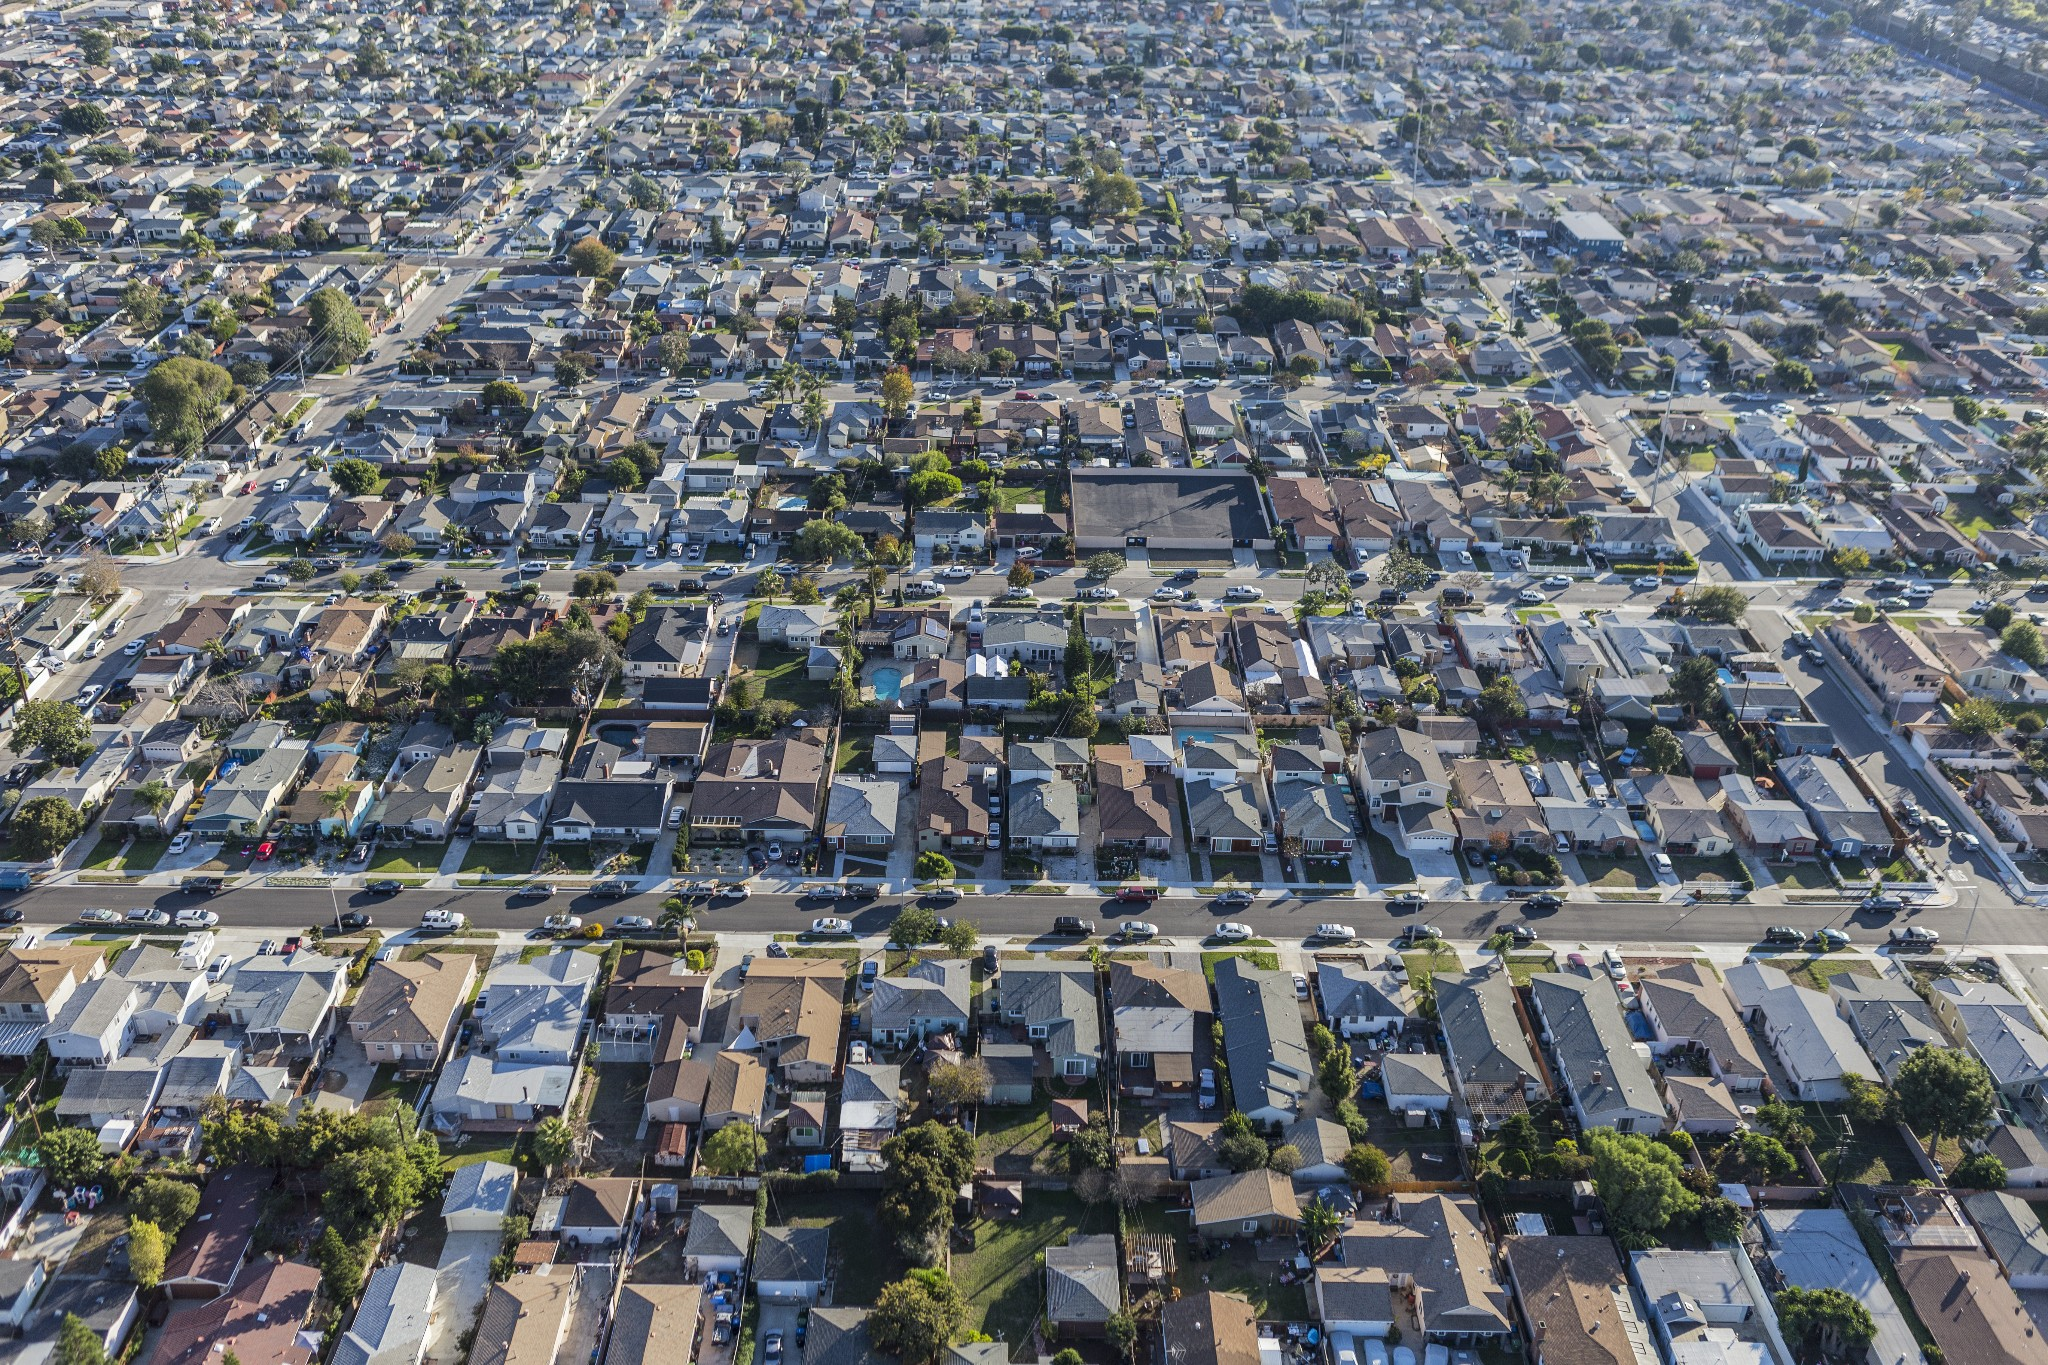 Report: LA home prices are 'overvalued'